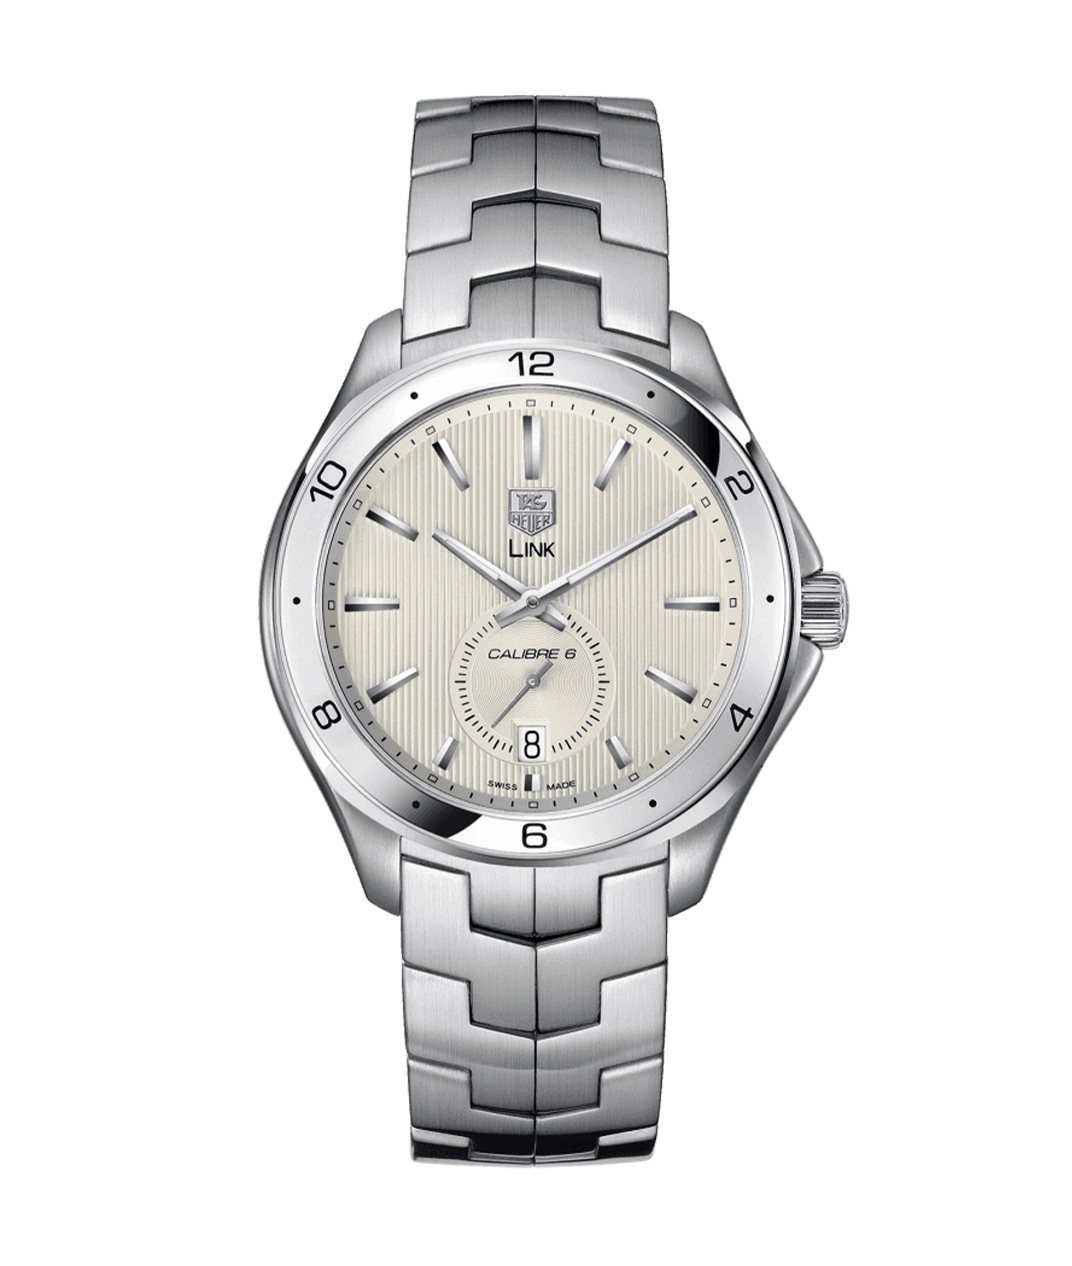 Tag-Heuer-Montre-Link-Calibre-6-Hall-of-Time-WAT2111-BA0950-m